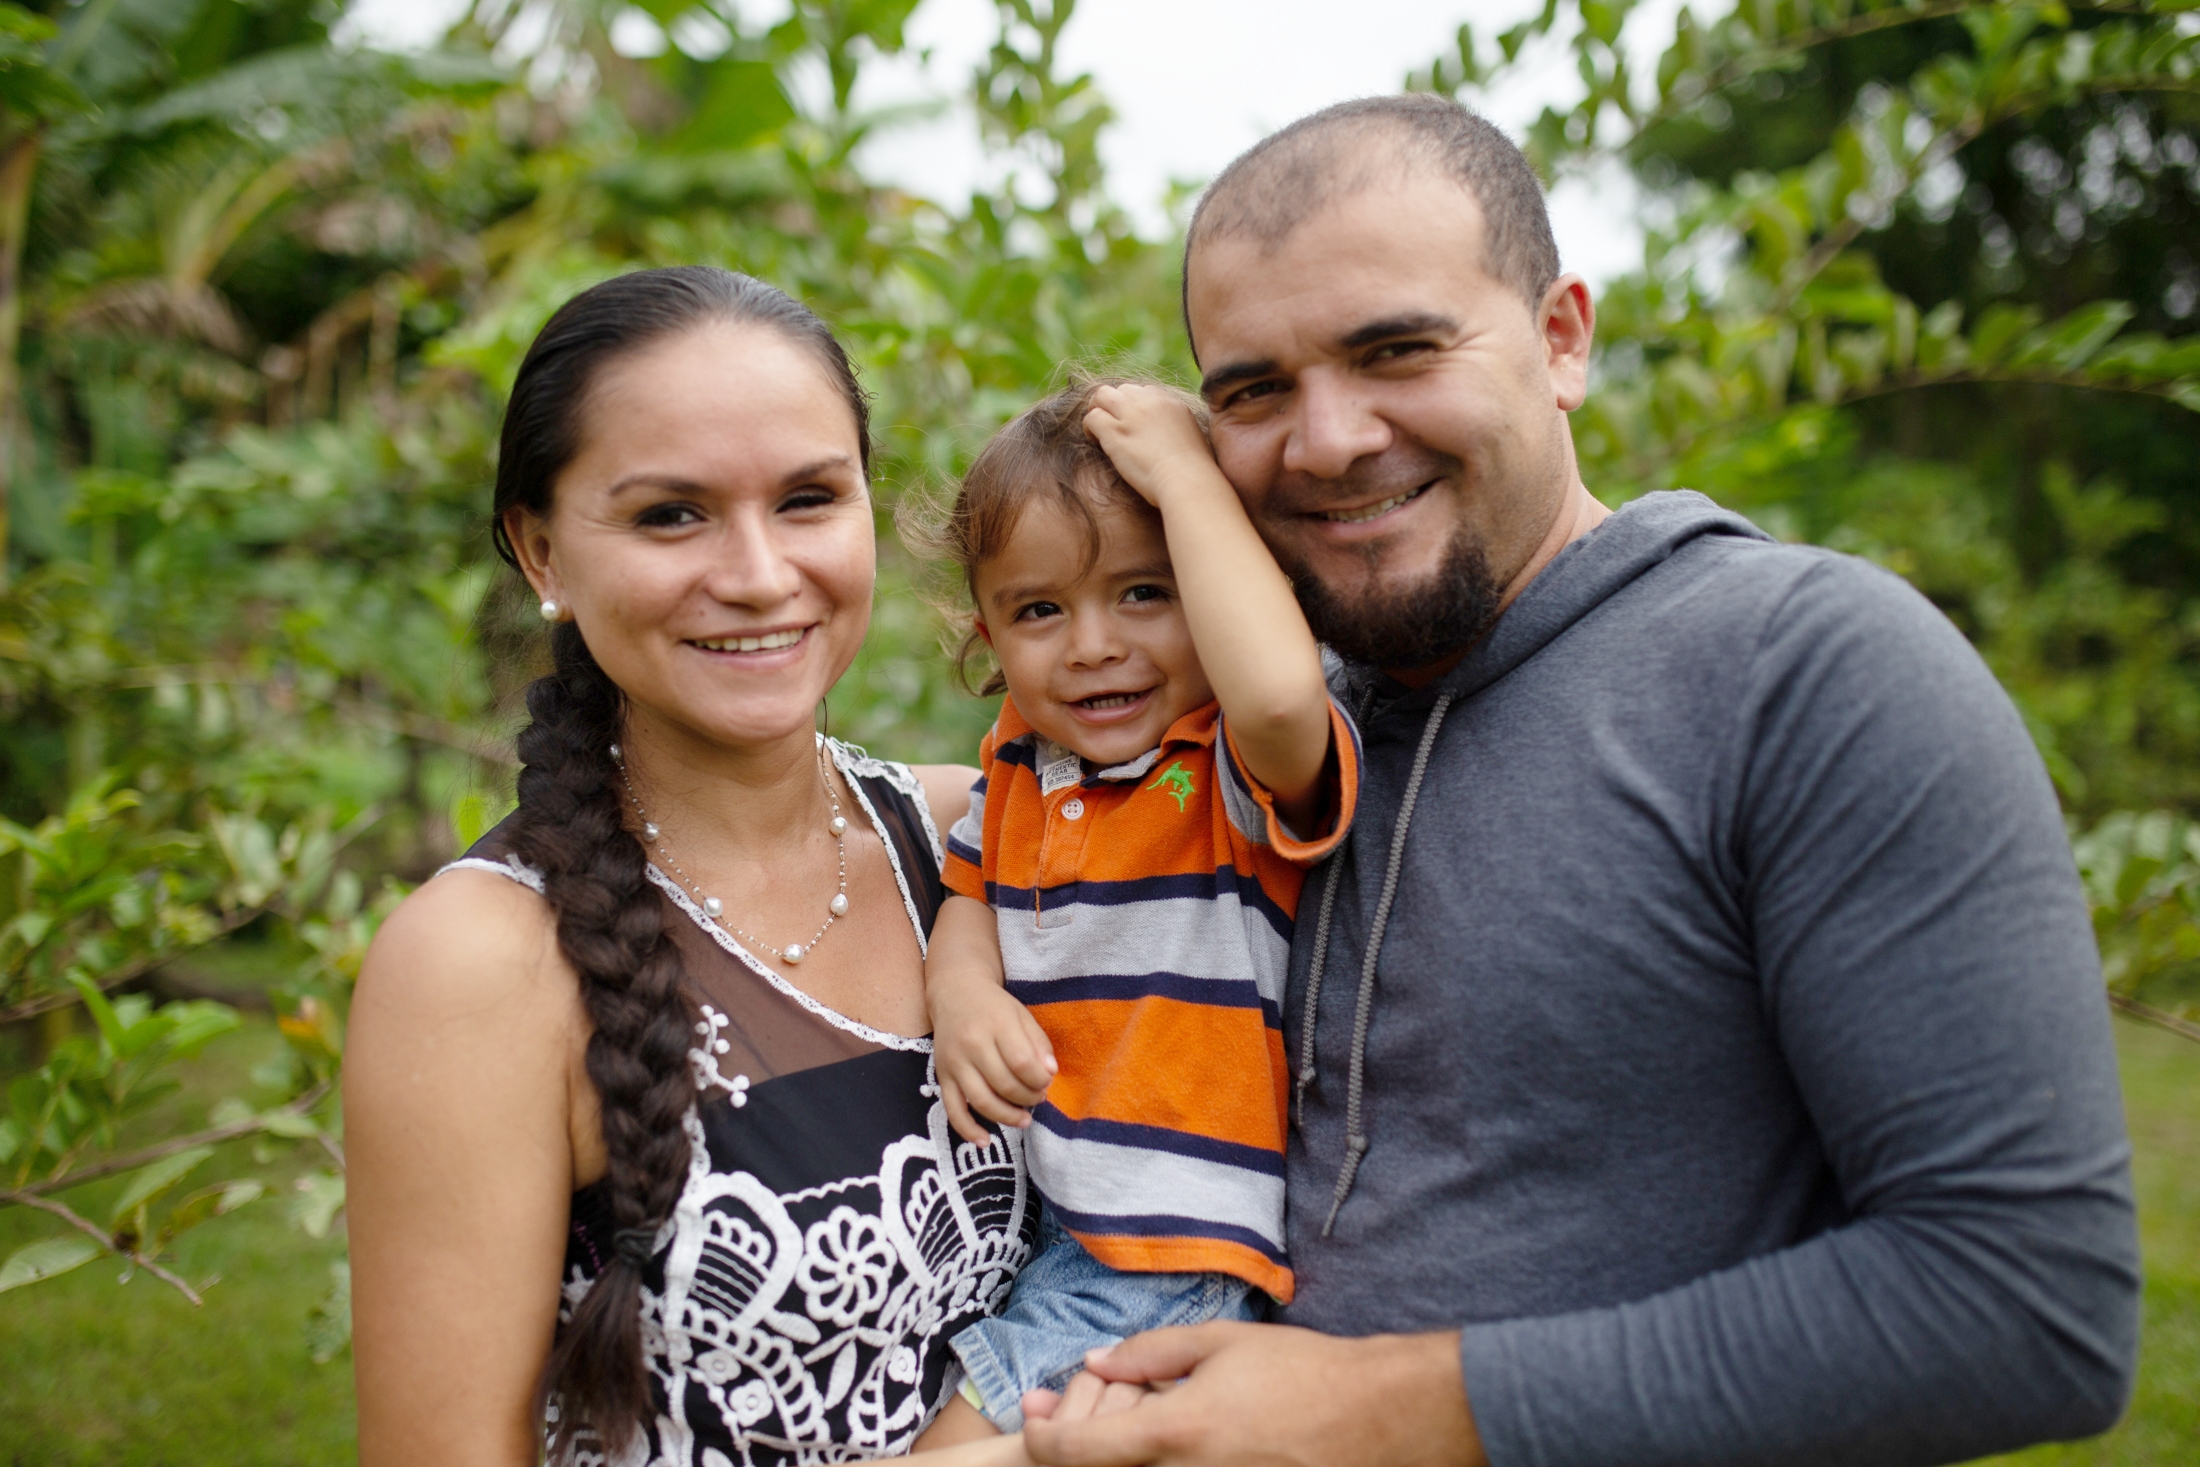 Lorena and Antonio (and their son, Liam) live on and manage our Campus in El Salvador. The Campus is consistently visited by local youth and families who journey there to find counsel in God's word and enjoy fellowship!